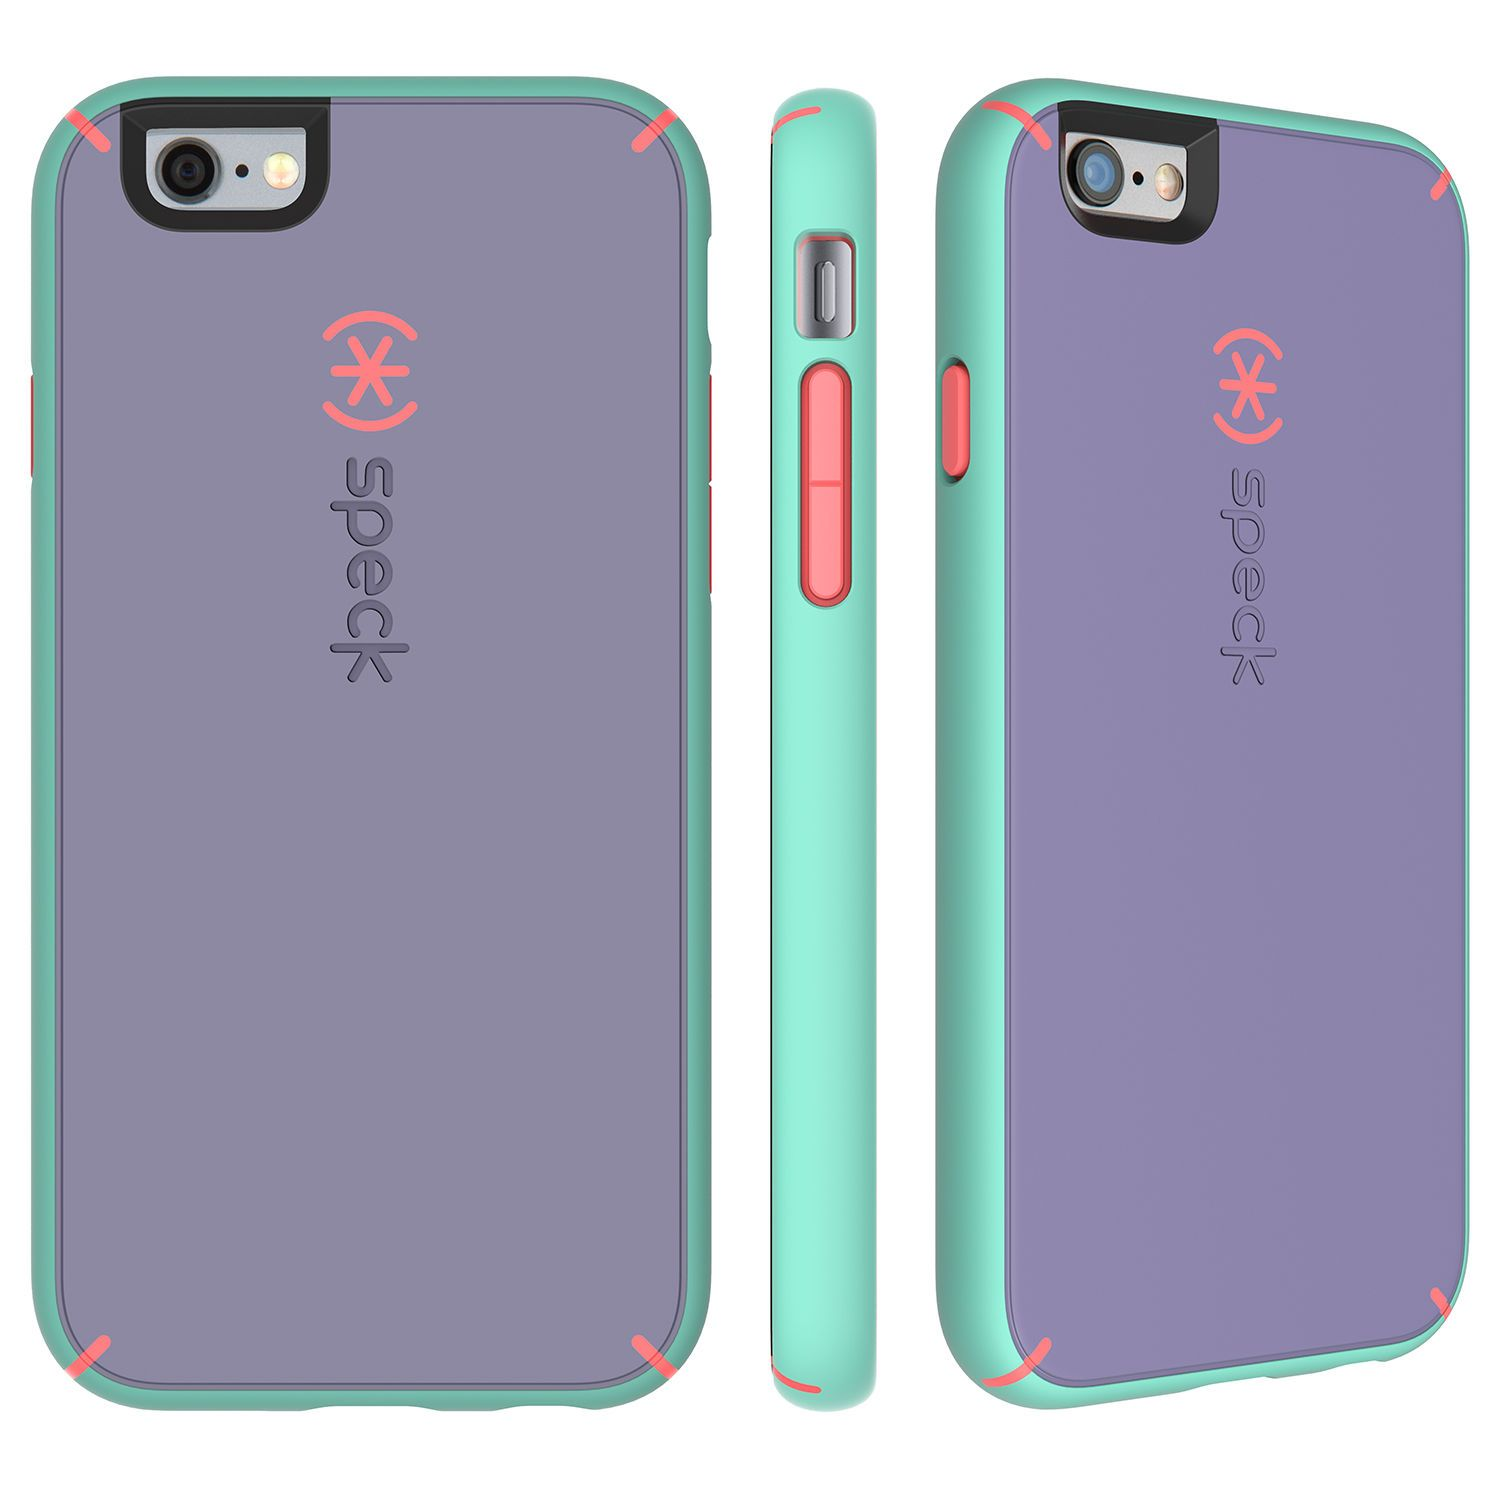 Mightyshell Iphone 6s 6 Cases Accessories Case Anti Crack Shock Softcase Ultrathin Clear Tpu Speck Heather Purple Warning Orange Aloe Green 4995 Plus